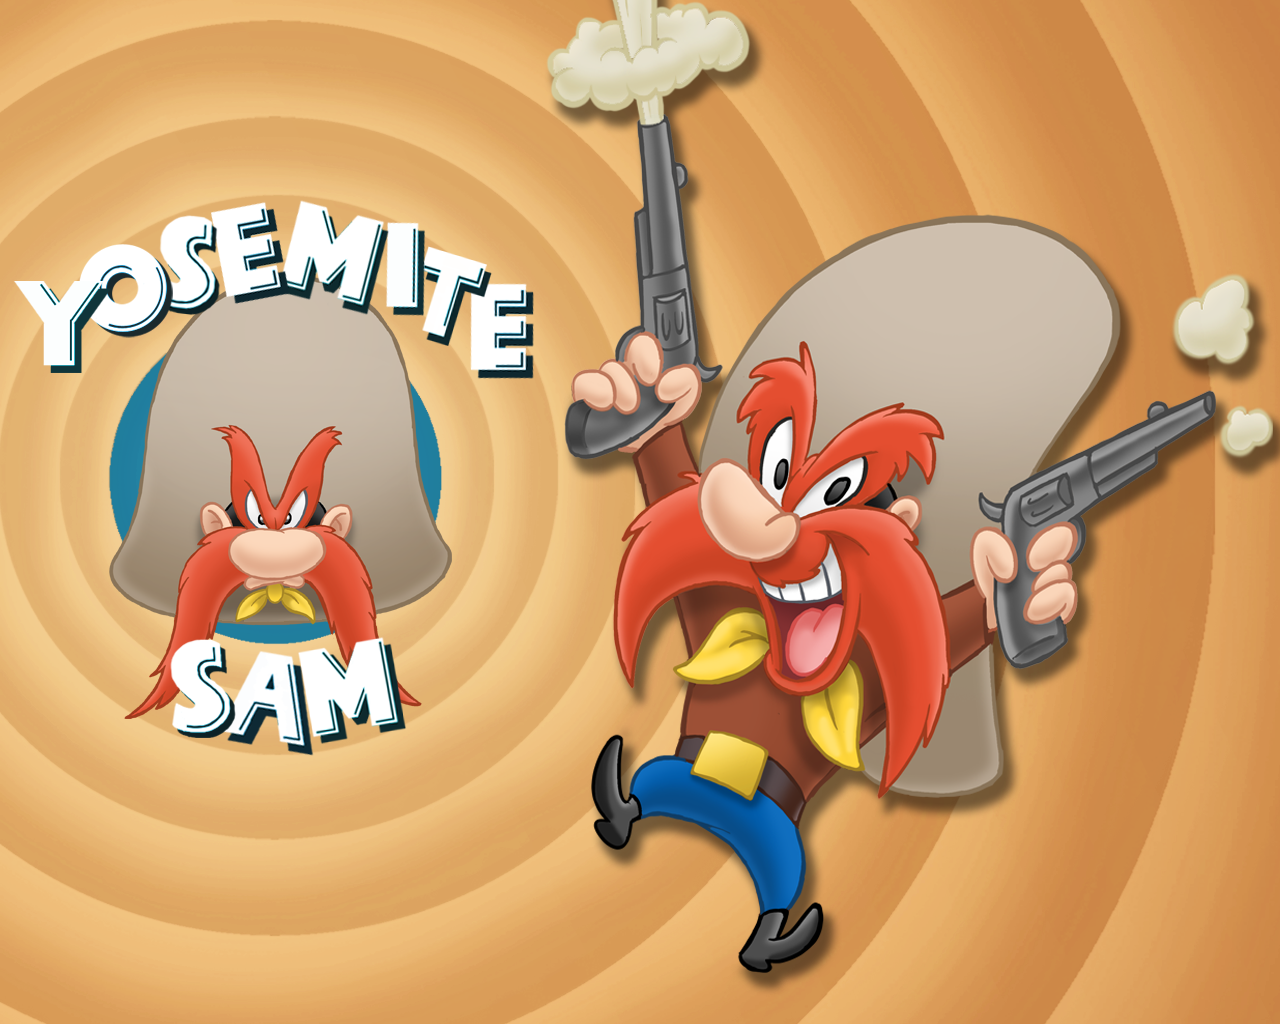 Yosemite Sam Is An American Animated Cartoon Character In The Looney Tunes And Merrie Melodies Series Of Cartoo Yosemite Sam Looney Tunes Cartoons Looney Tunes